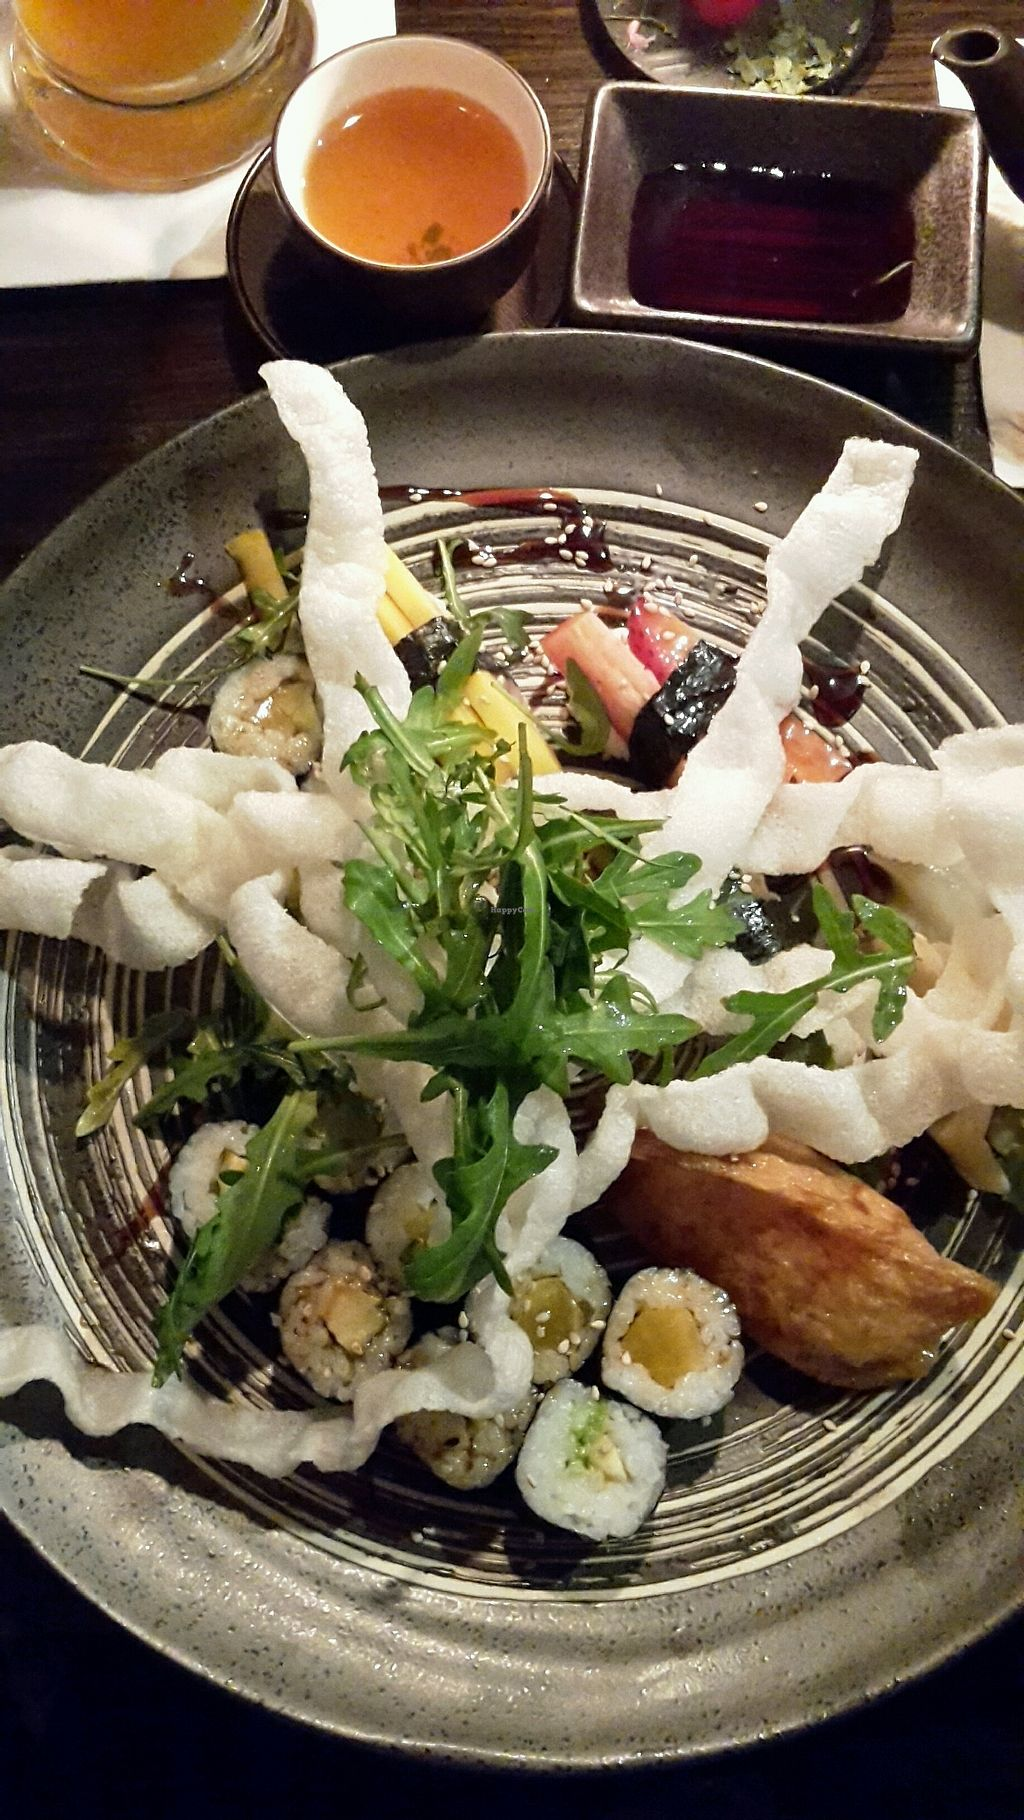 """Photo of Hiro Sushi  by <a href=""""/members/profile/Wilkou"""">Wilkou</a> <br/>vegan sushi <br/> February 13, 2018  - <a href='/contact/abuse/image/111374/358858'>Report</a>"""